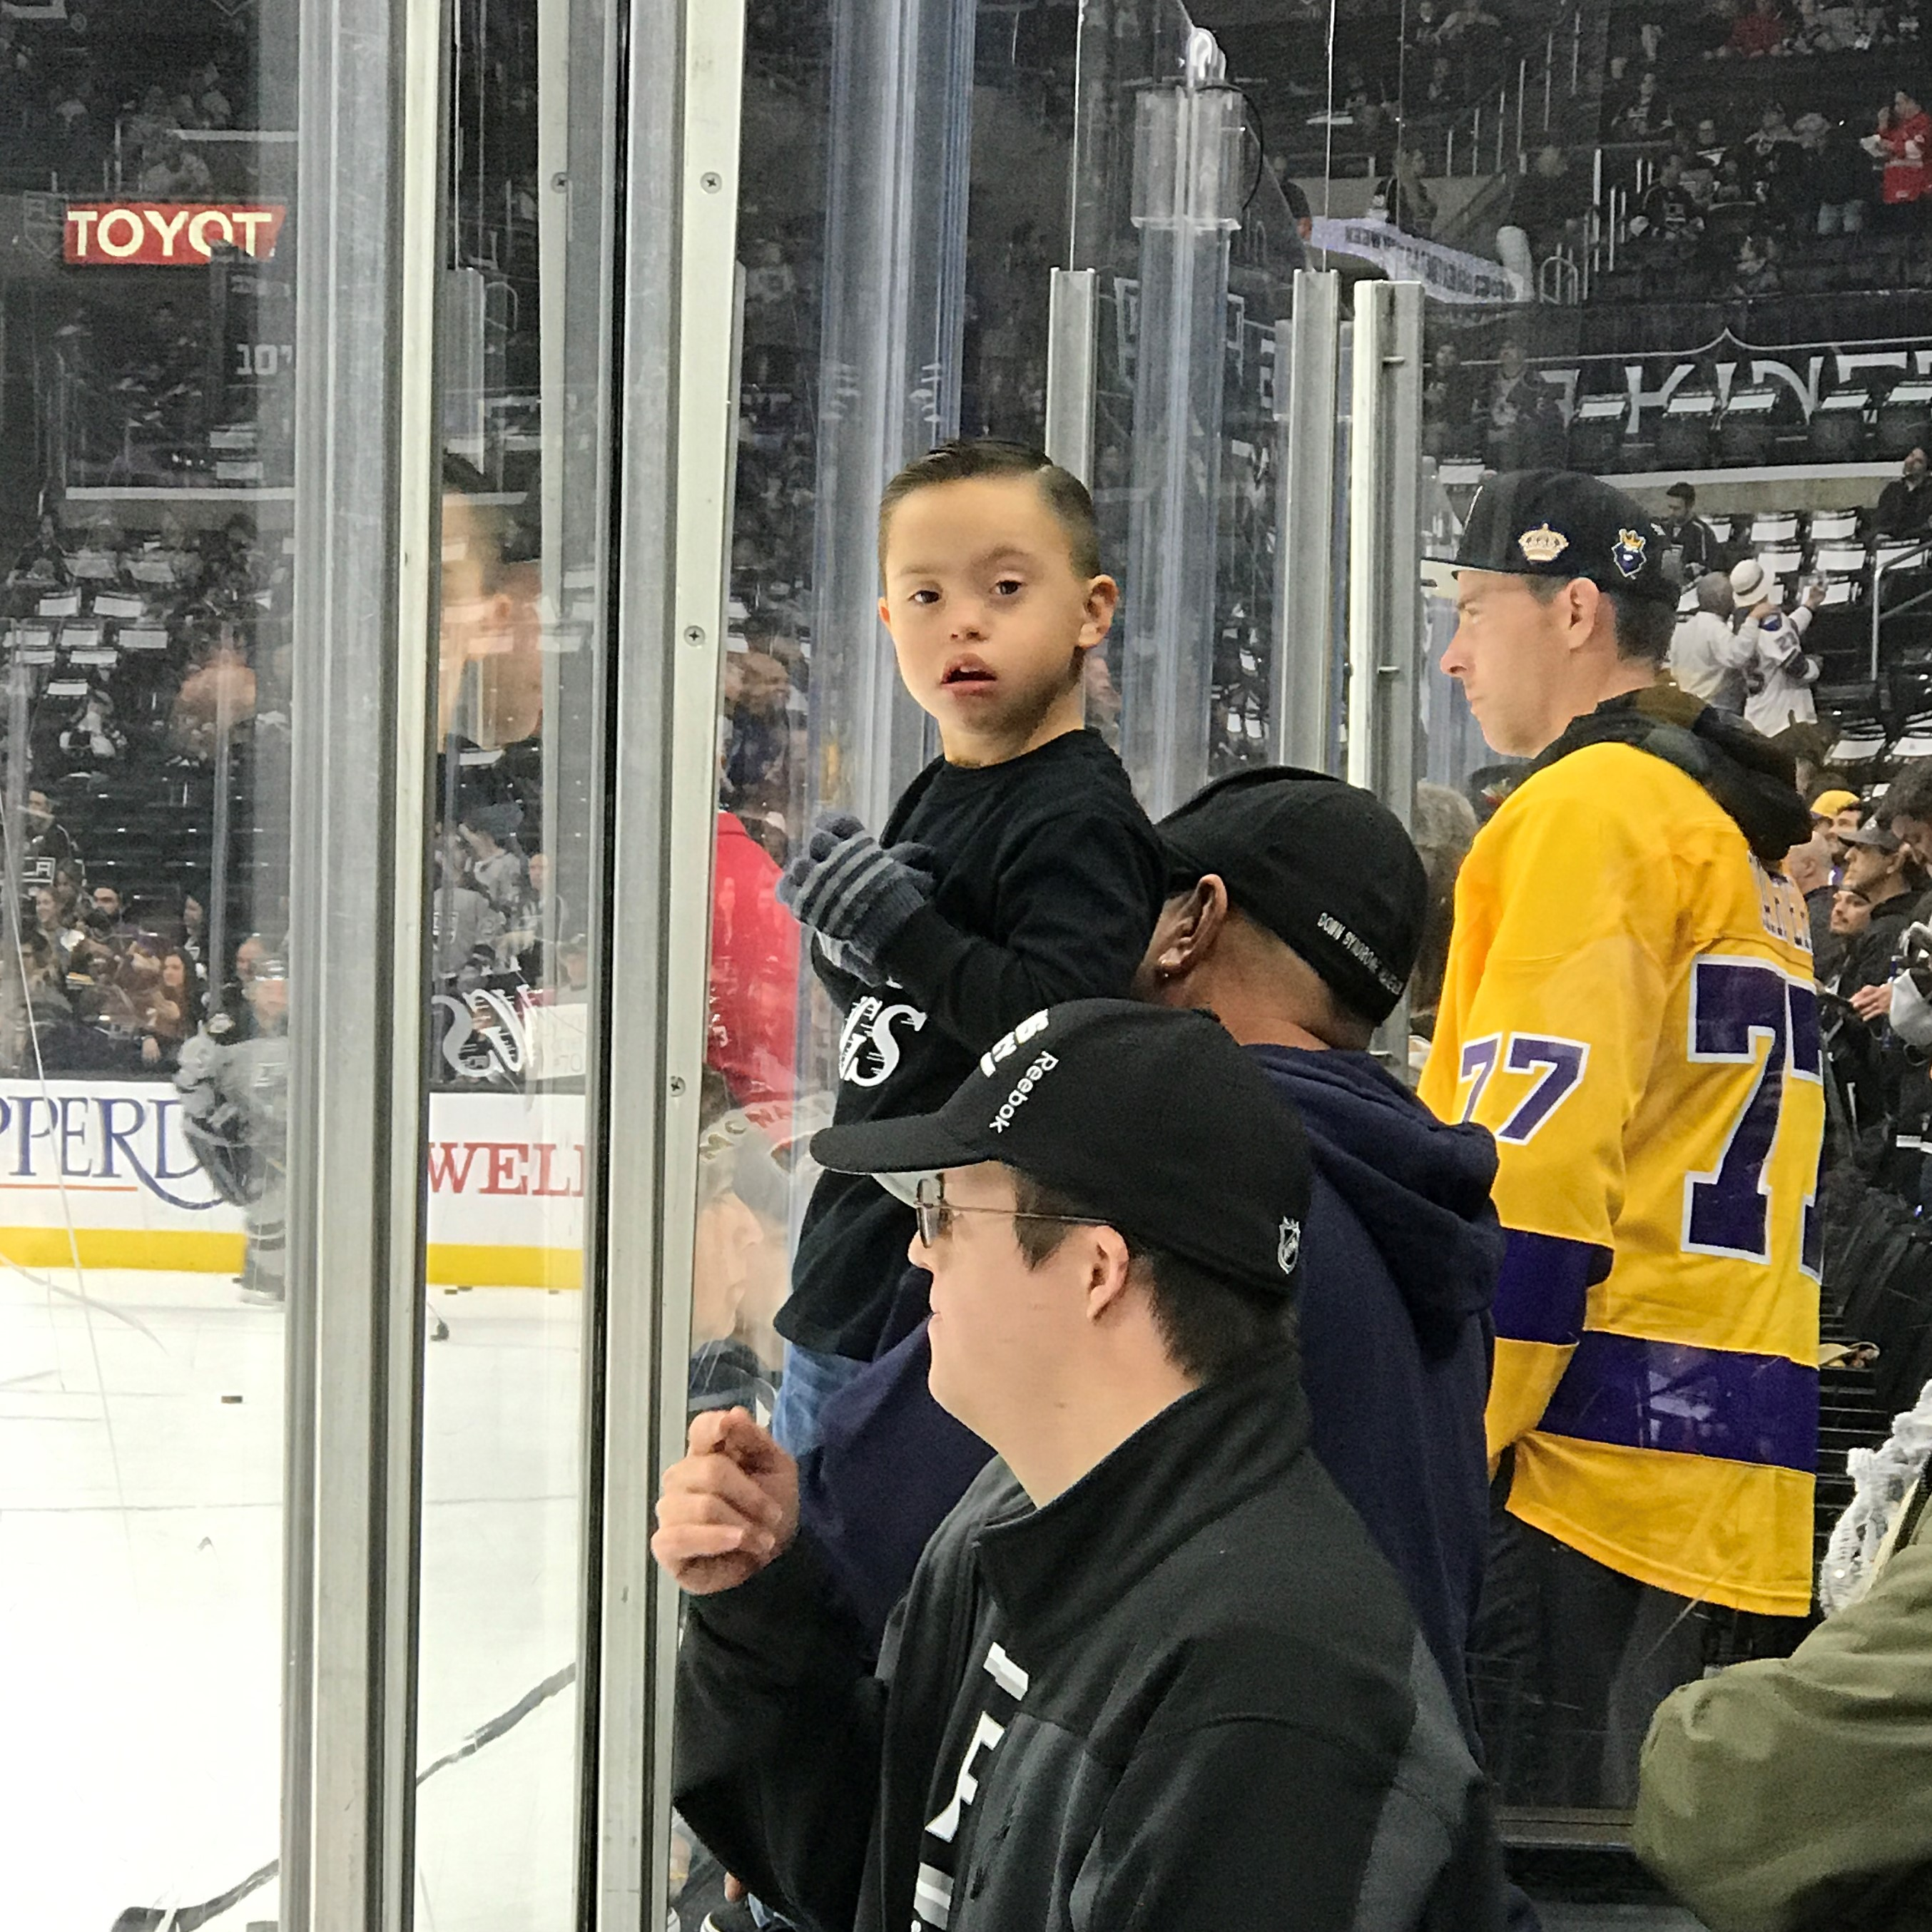 WDSD with LA Kings